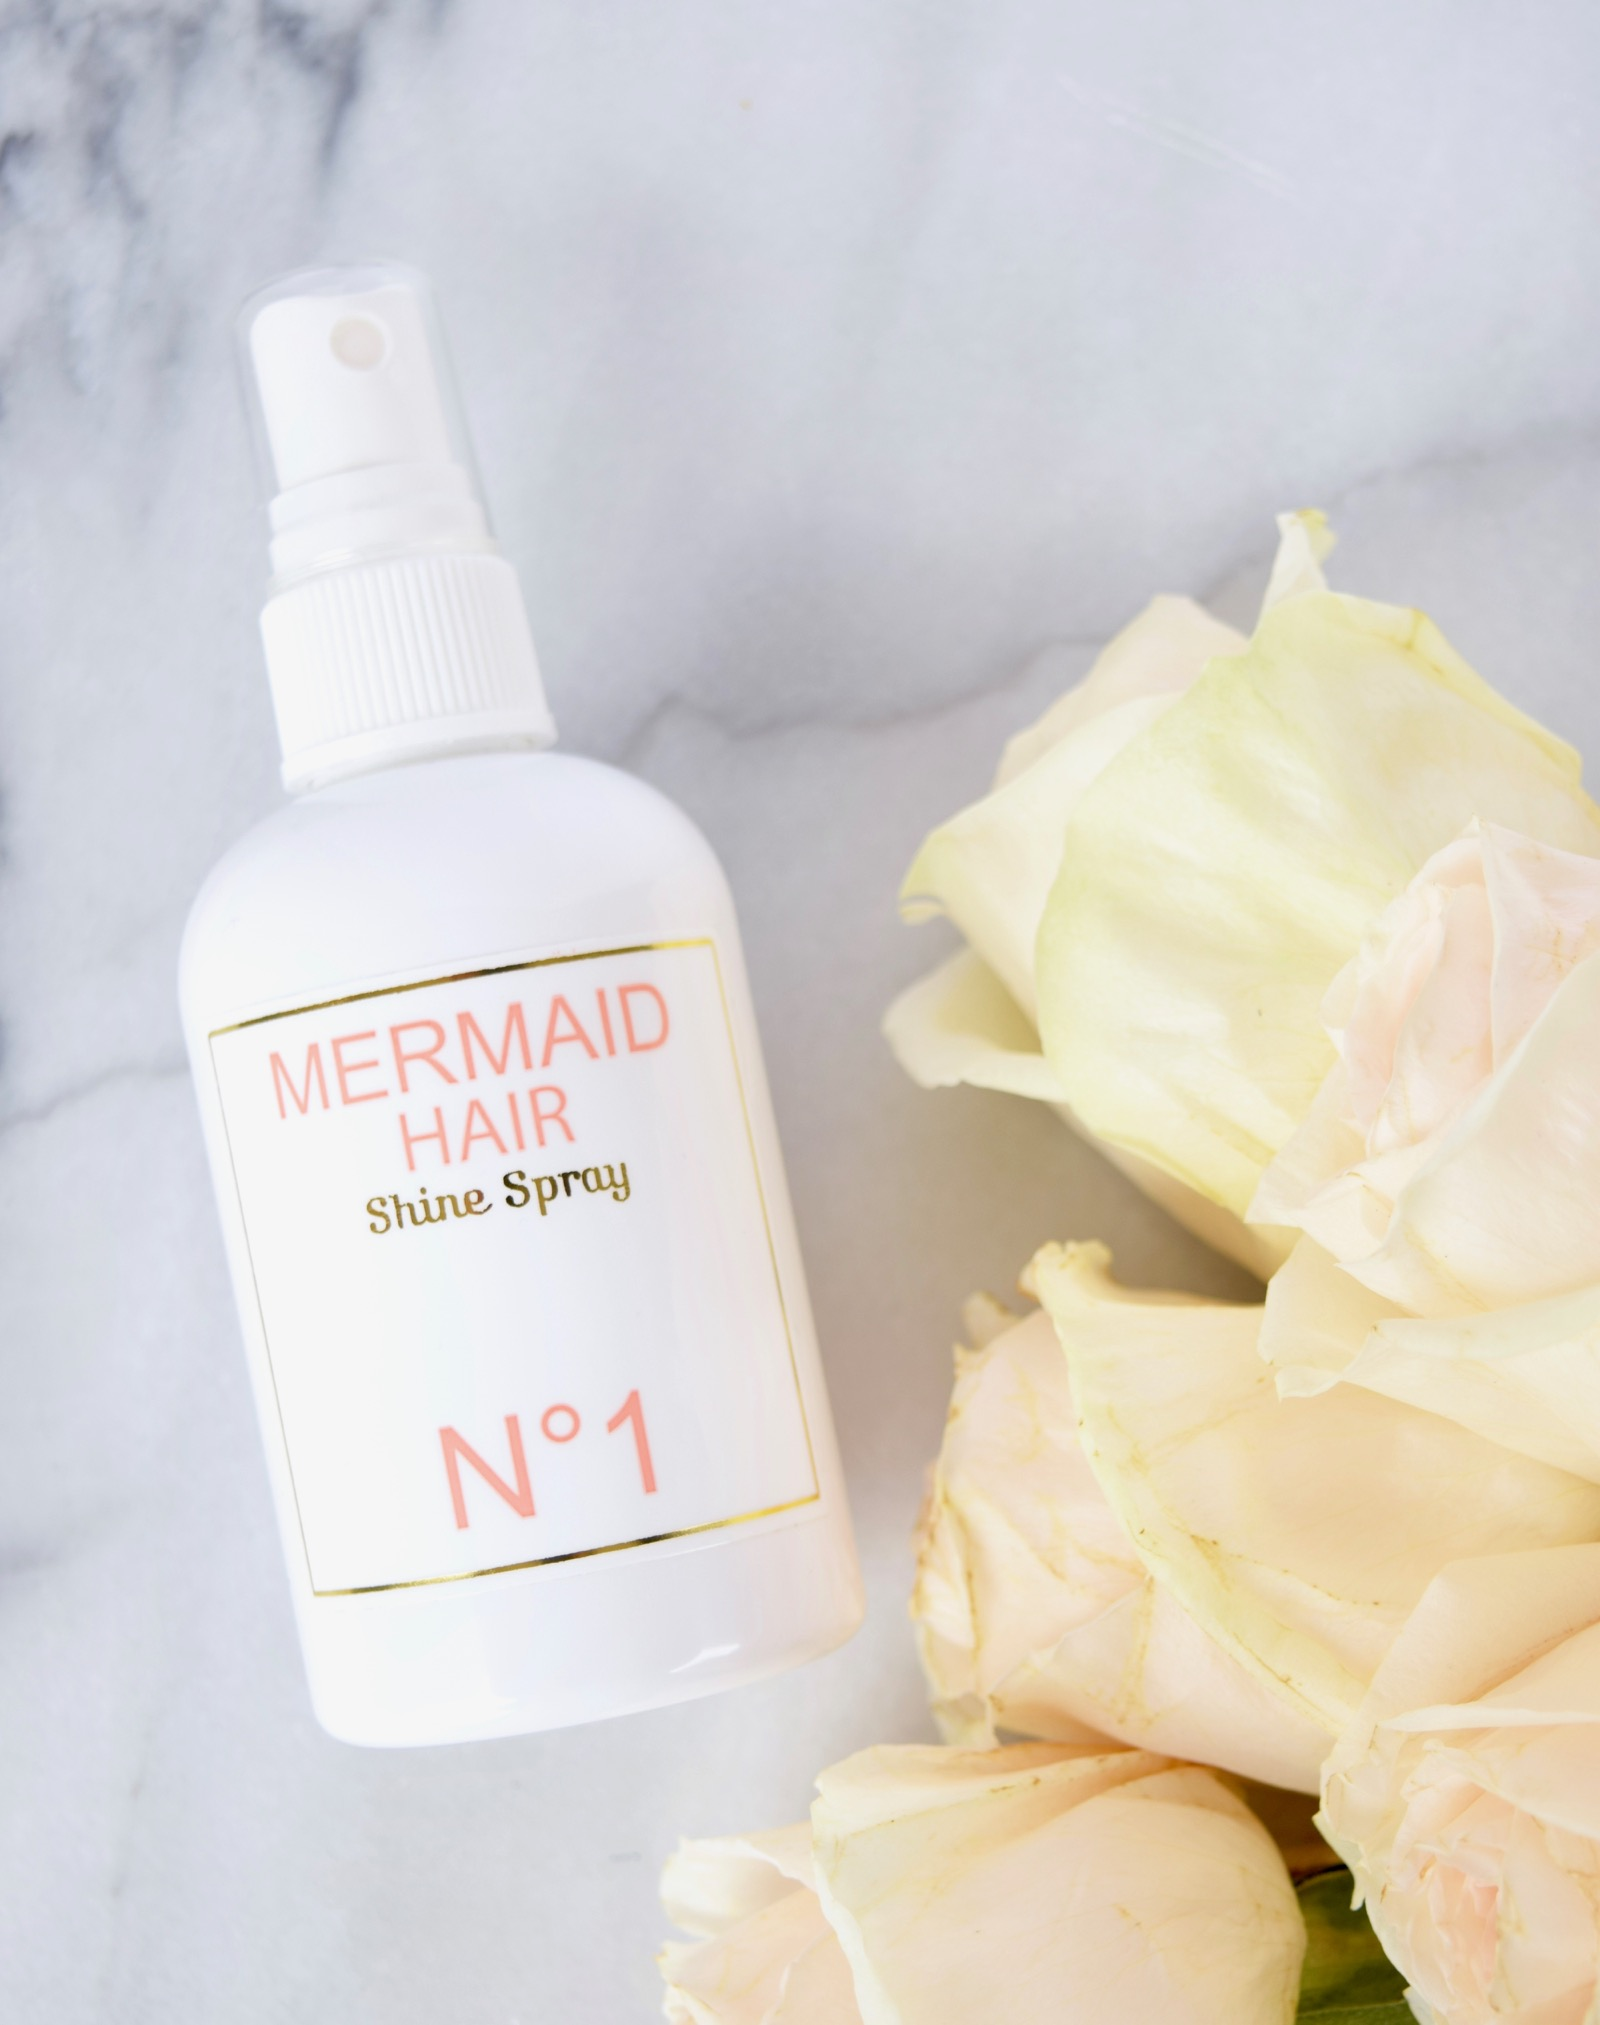 Mermaid Perfume Shine Spray